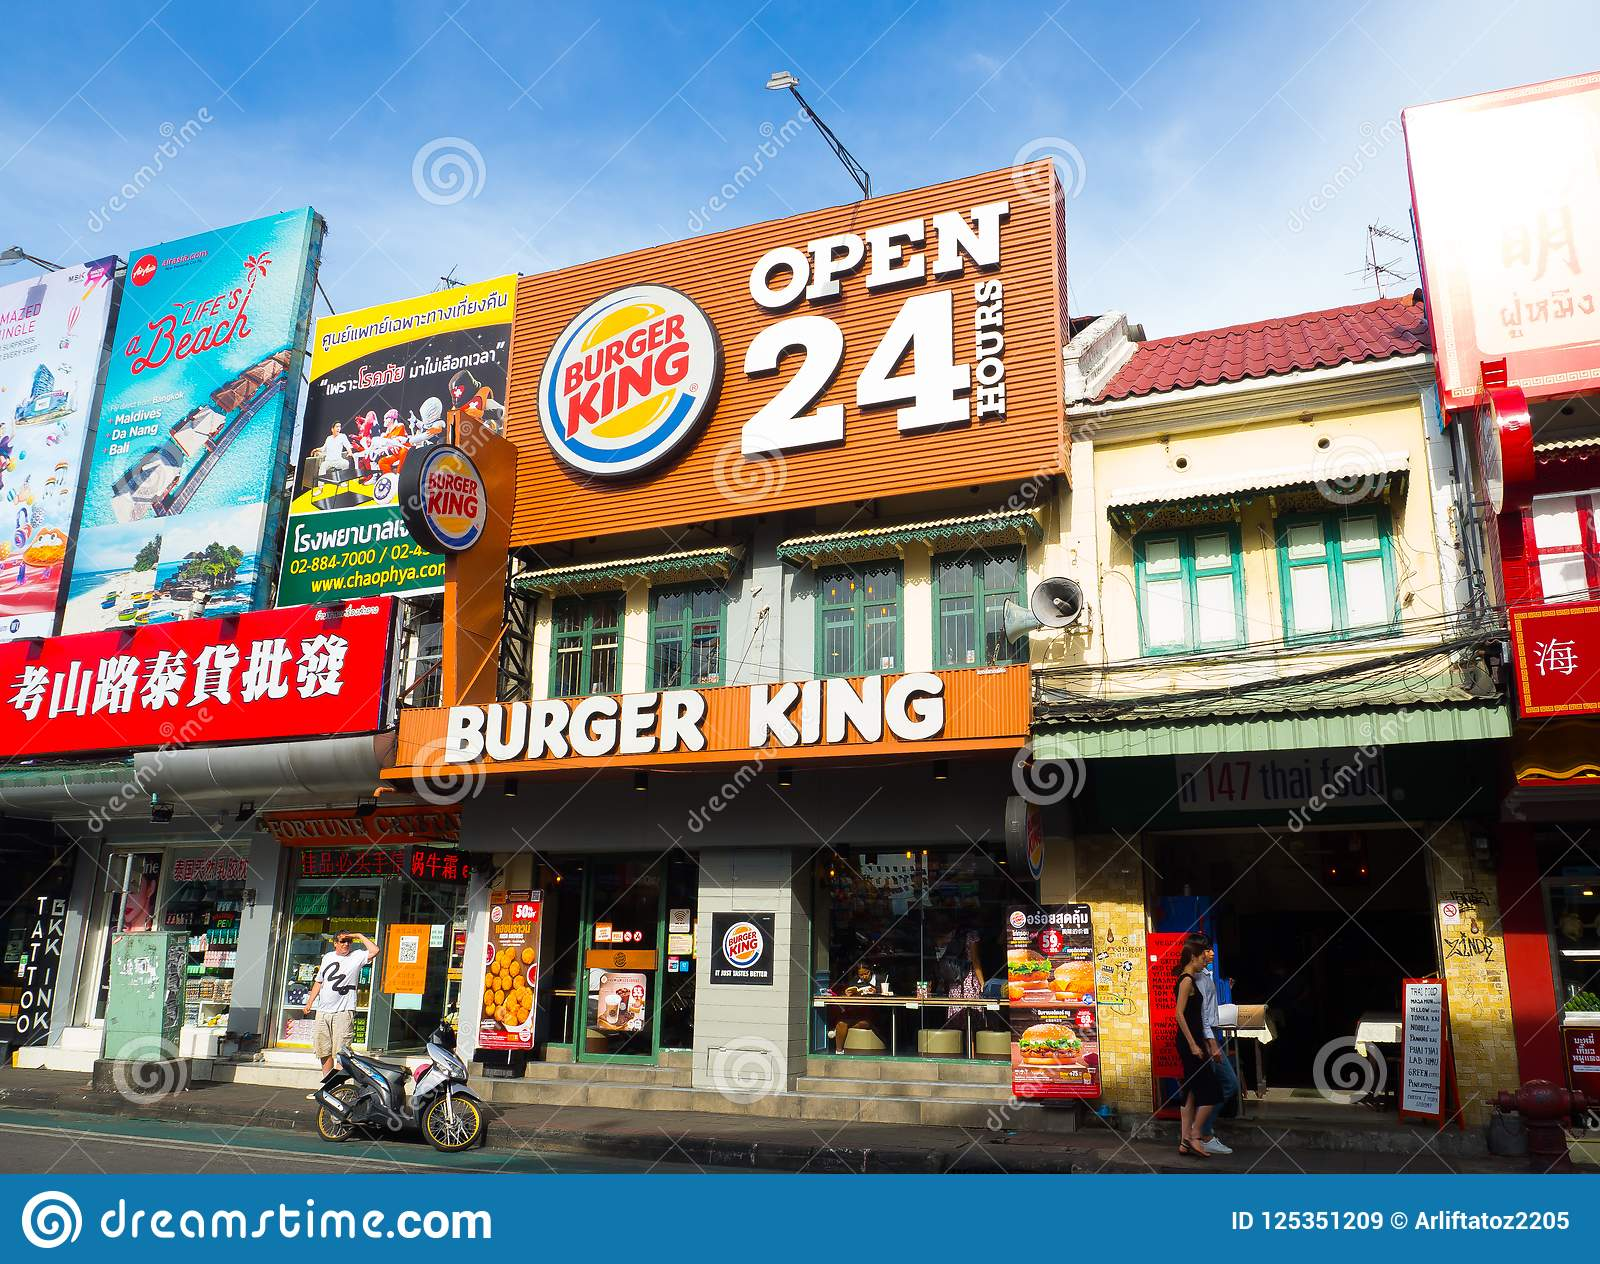 Burger King Fast Food Restaurant Open 24 Hours At Khao San Road